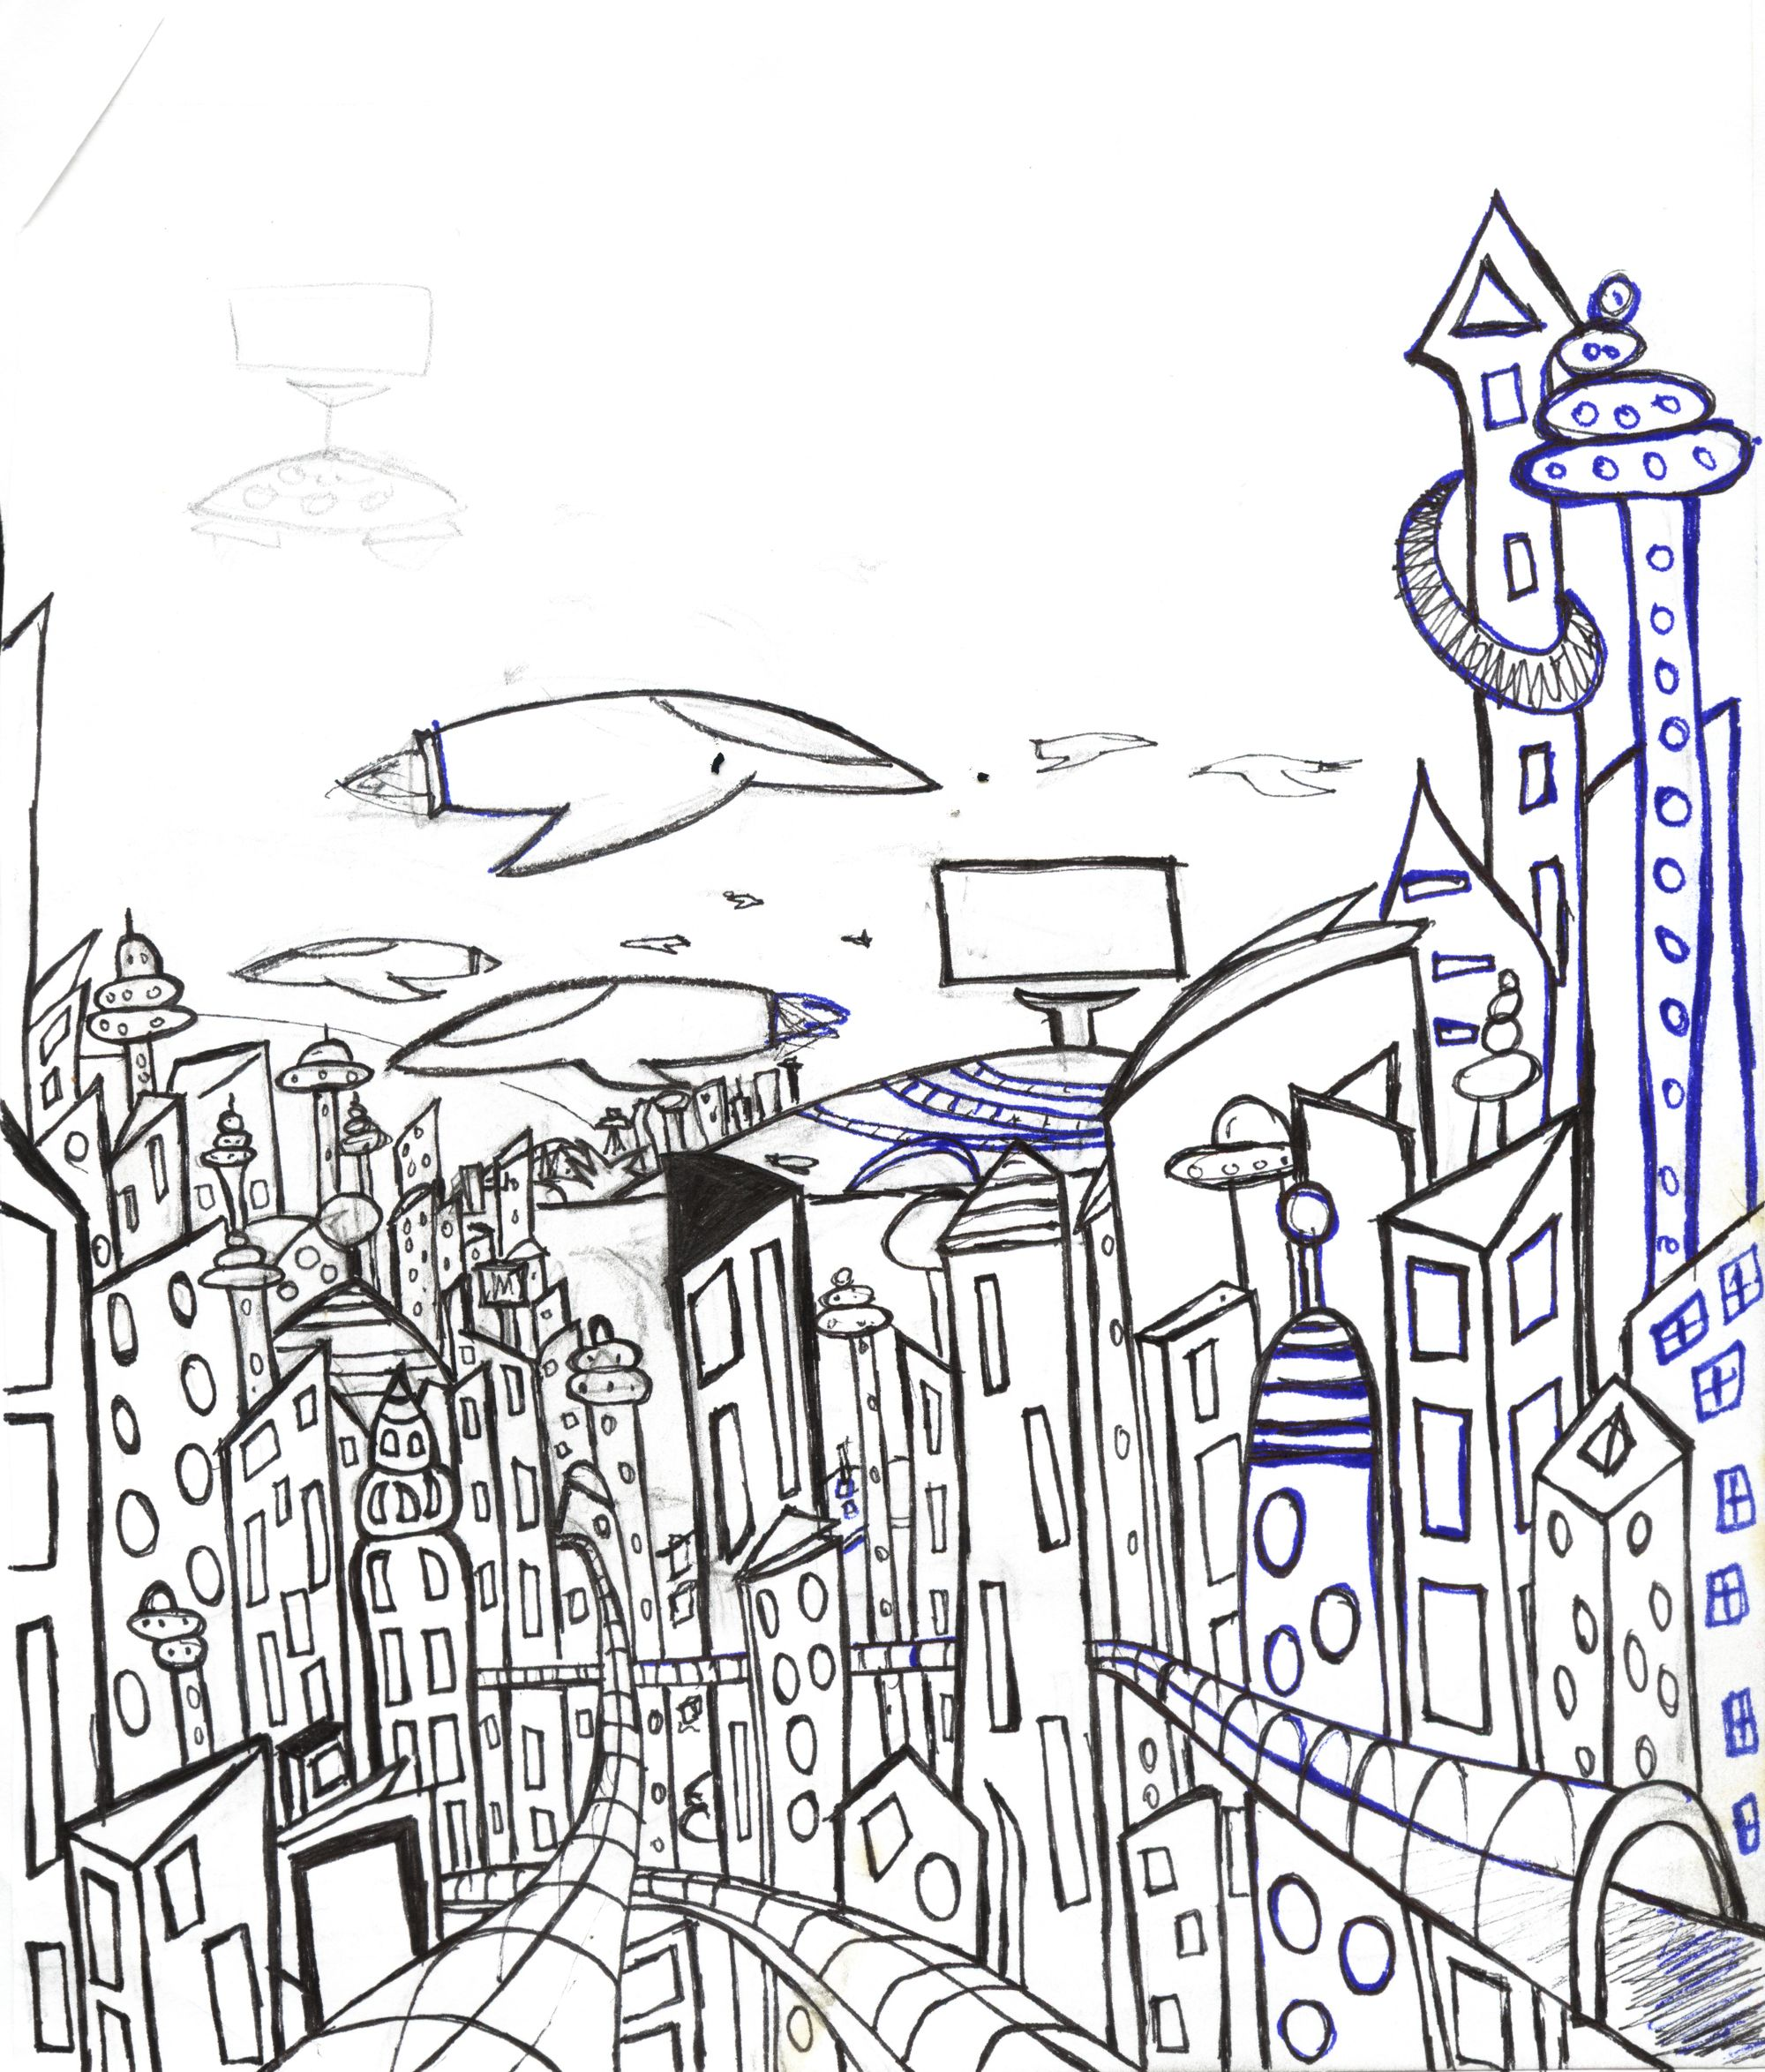 Future City With Images Futuristic City City Sketch Sketches